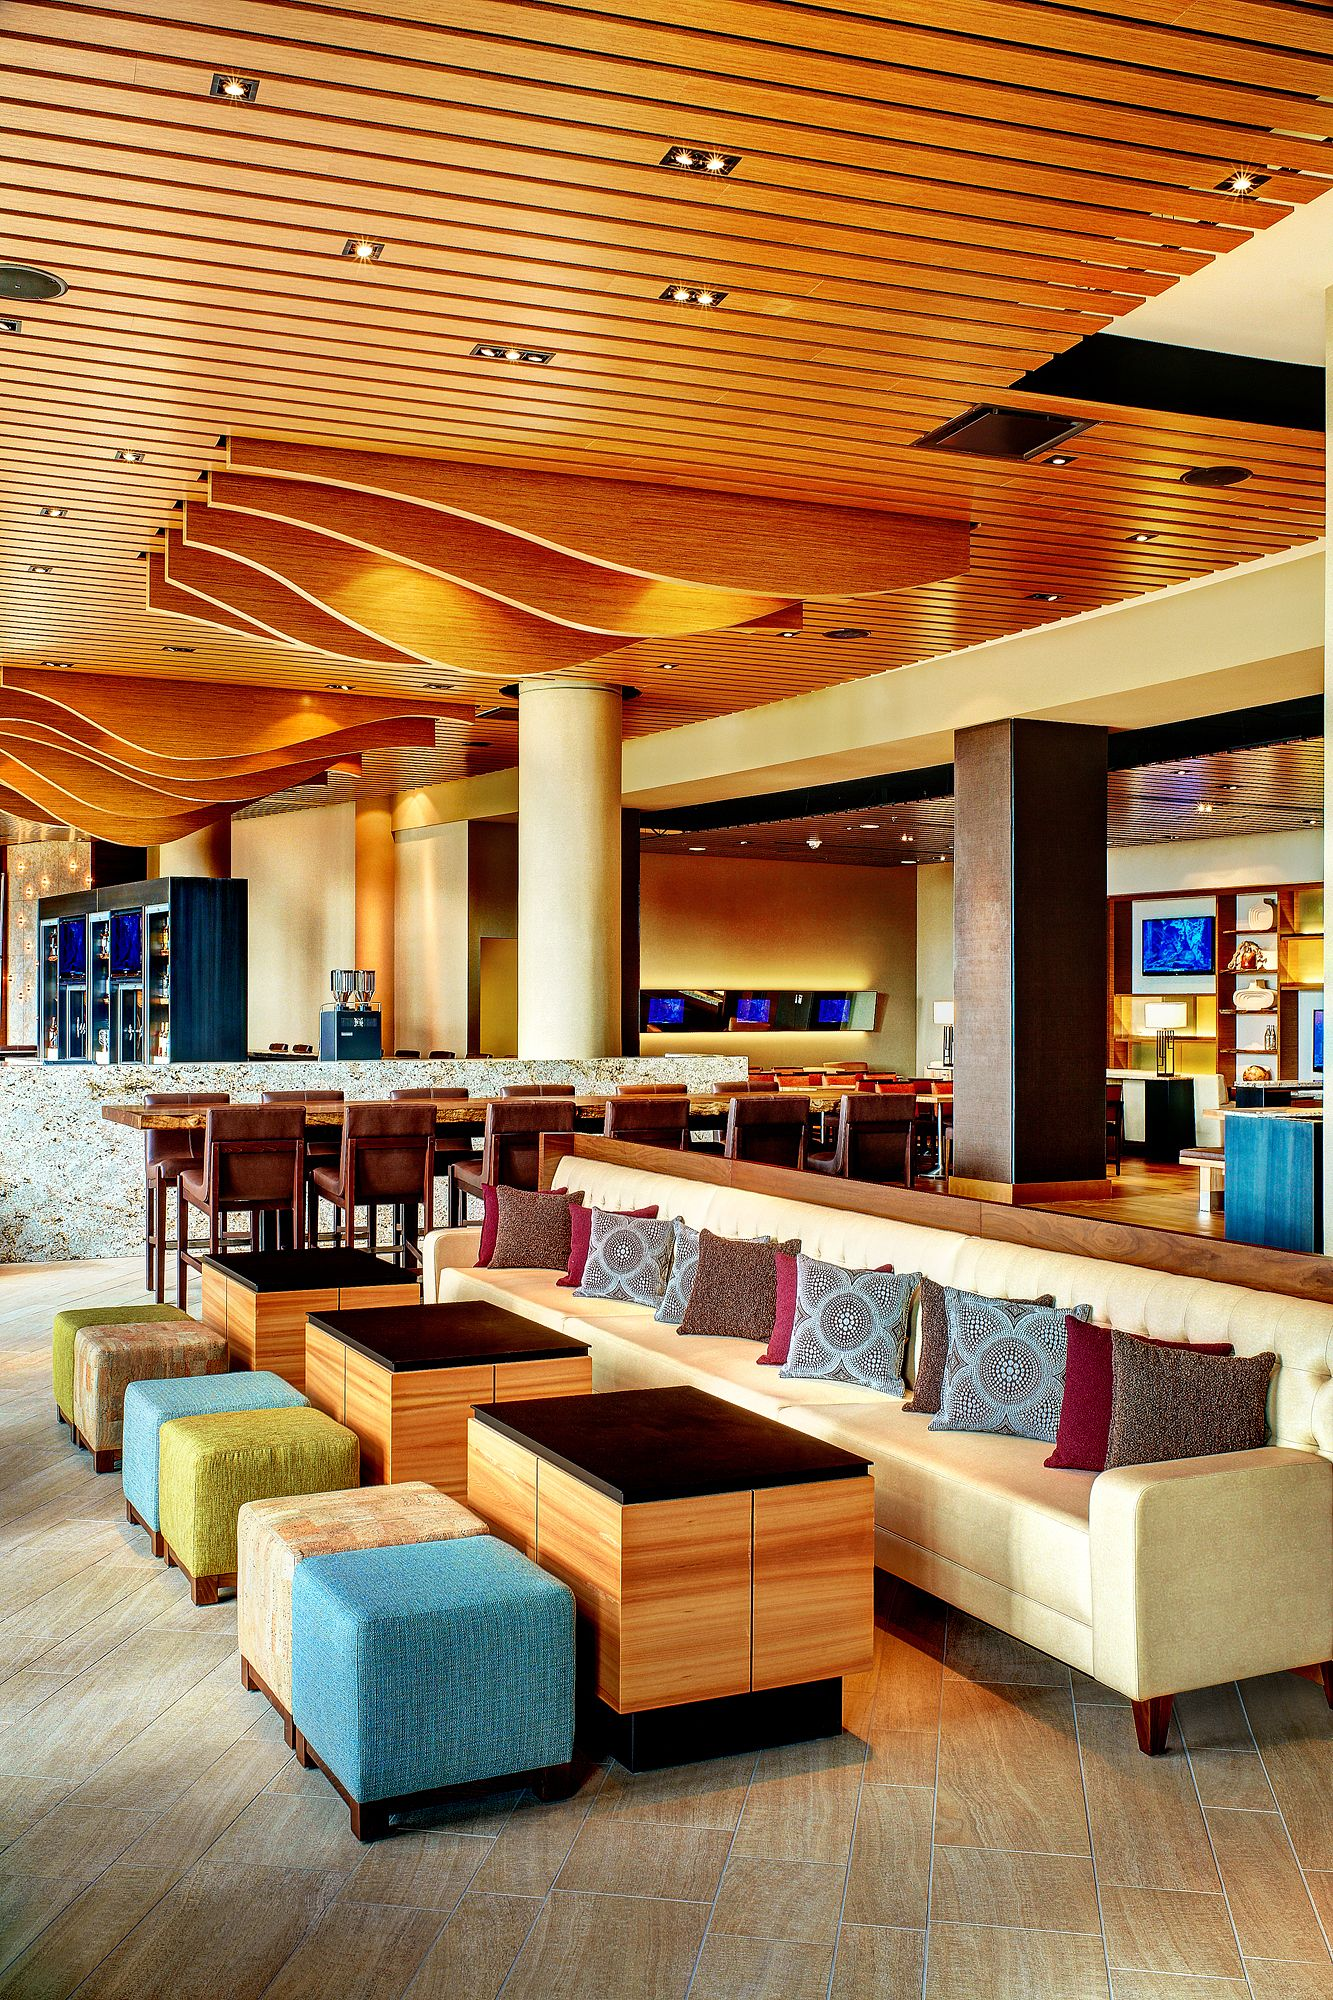 Our Main Restaurant Area Features Televisions, And A Media